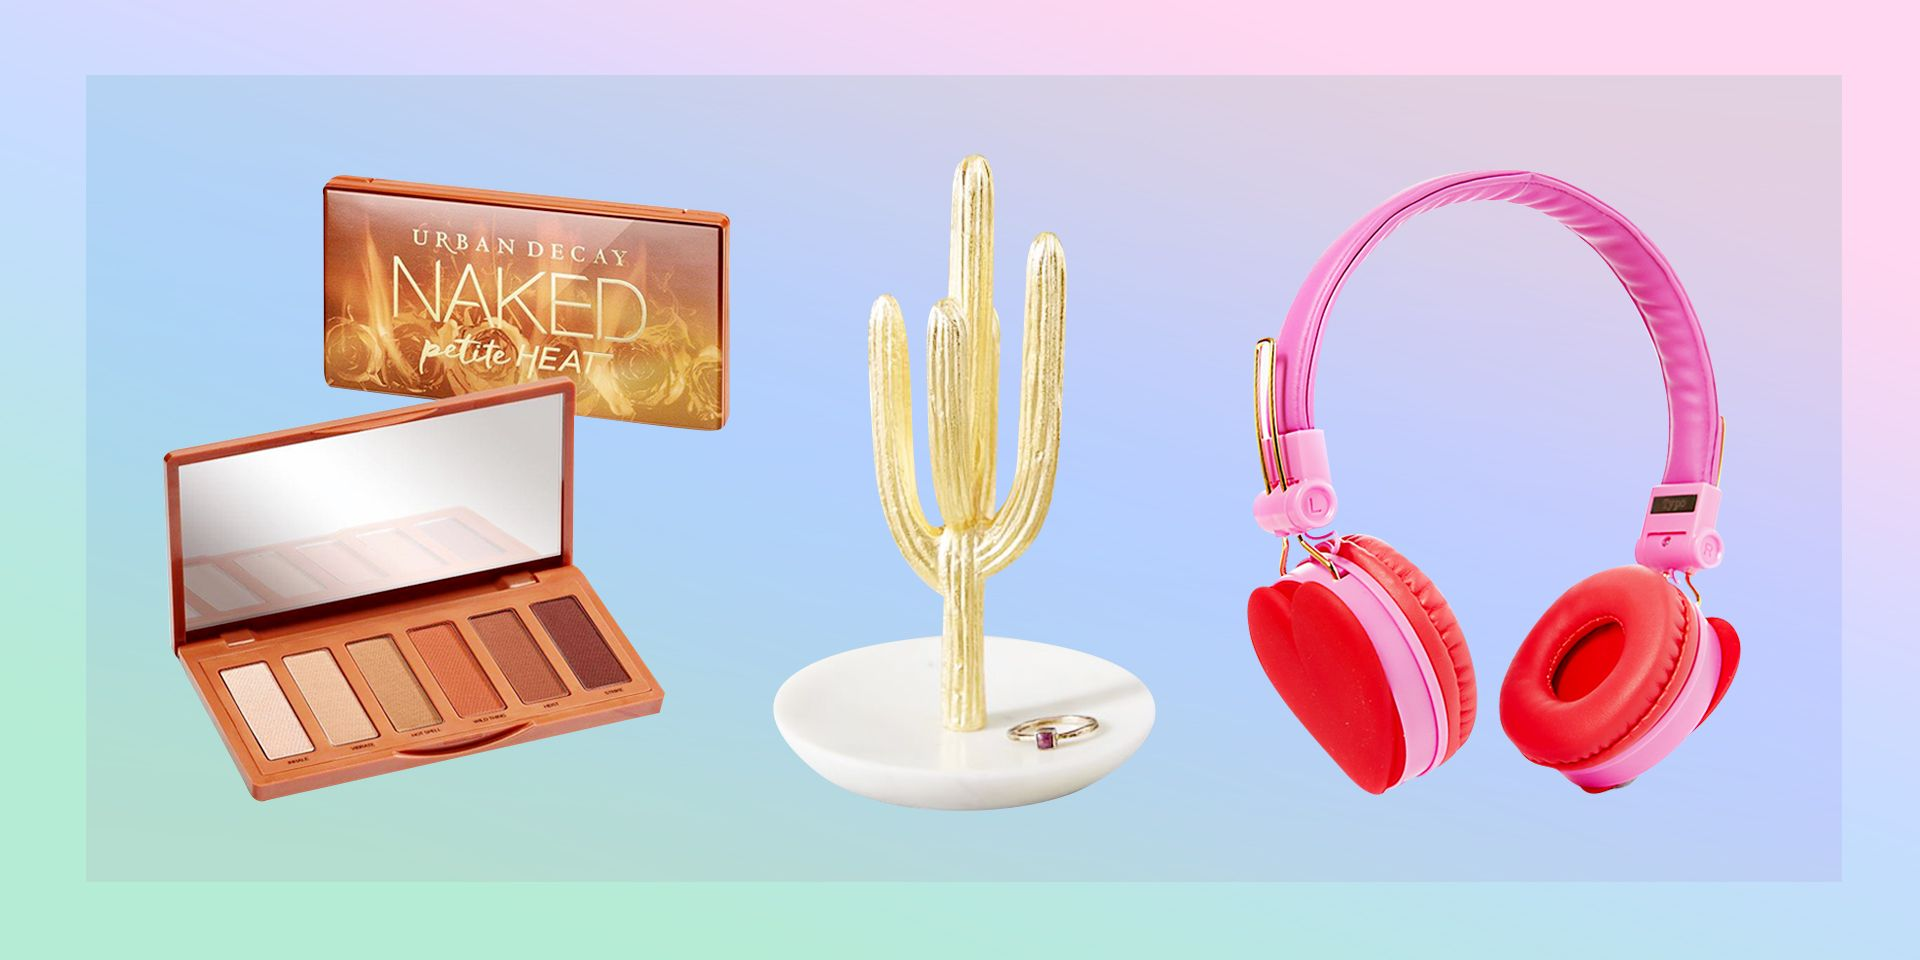 15 Best Last Minute Christmas Gifts 2018 – Top Last Minute Gifts to Buy